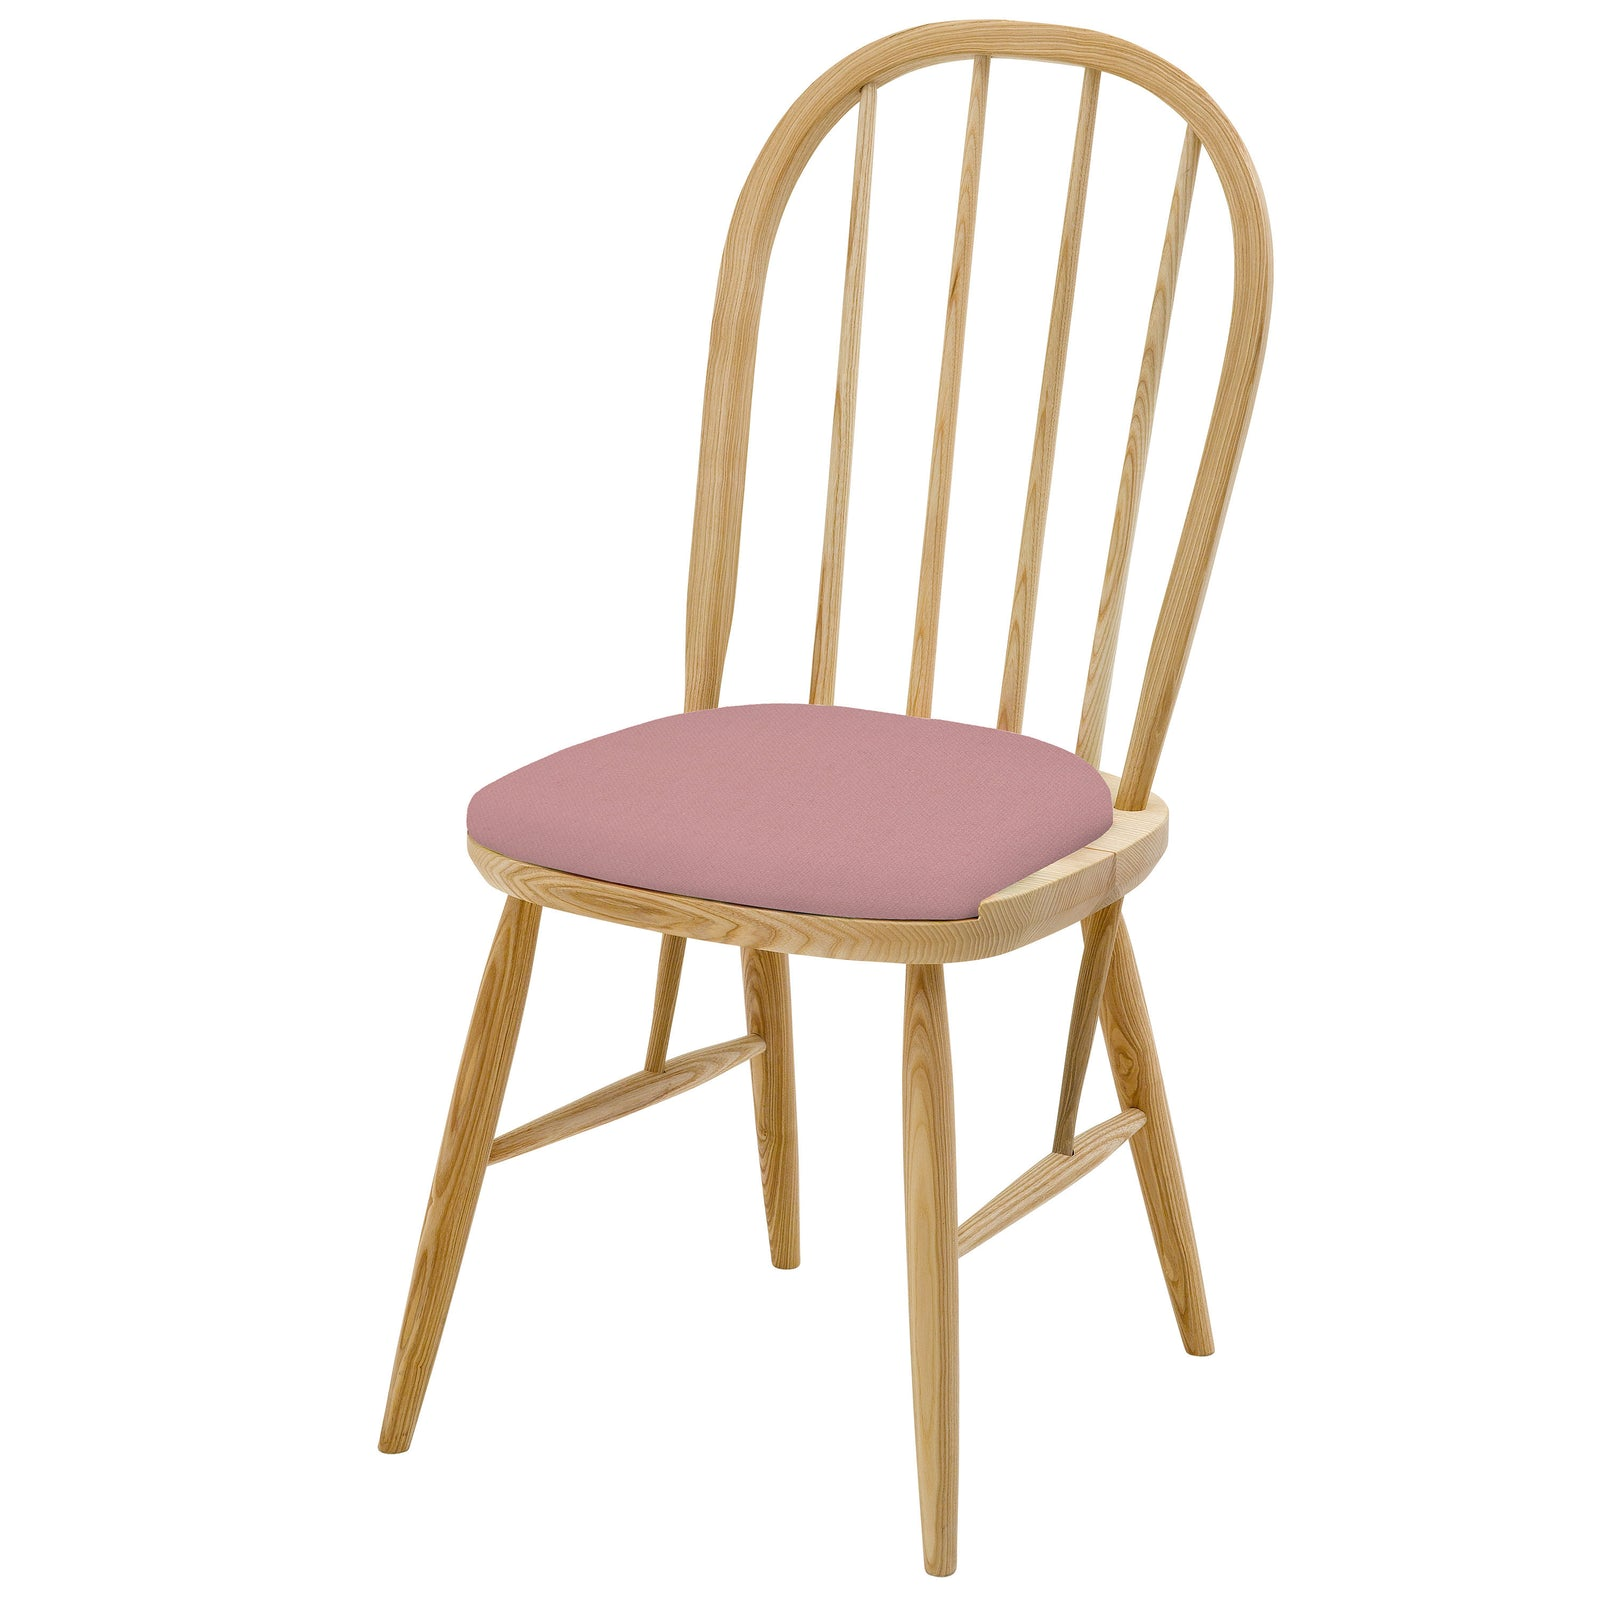 The Elkin Dining Chair made-to-order in your chosen colourway.